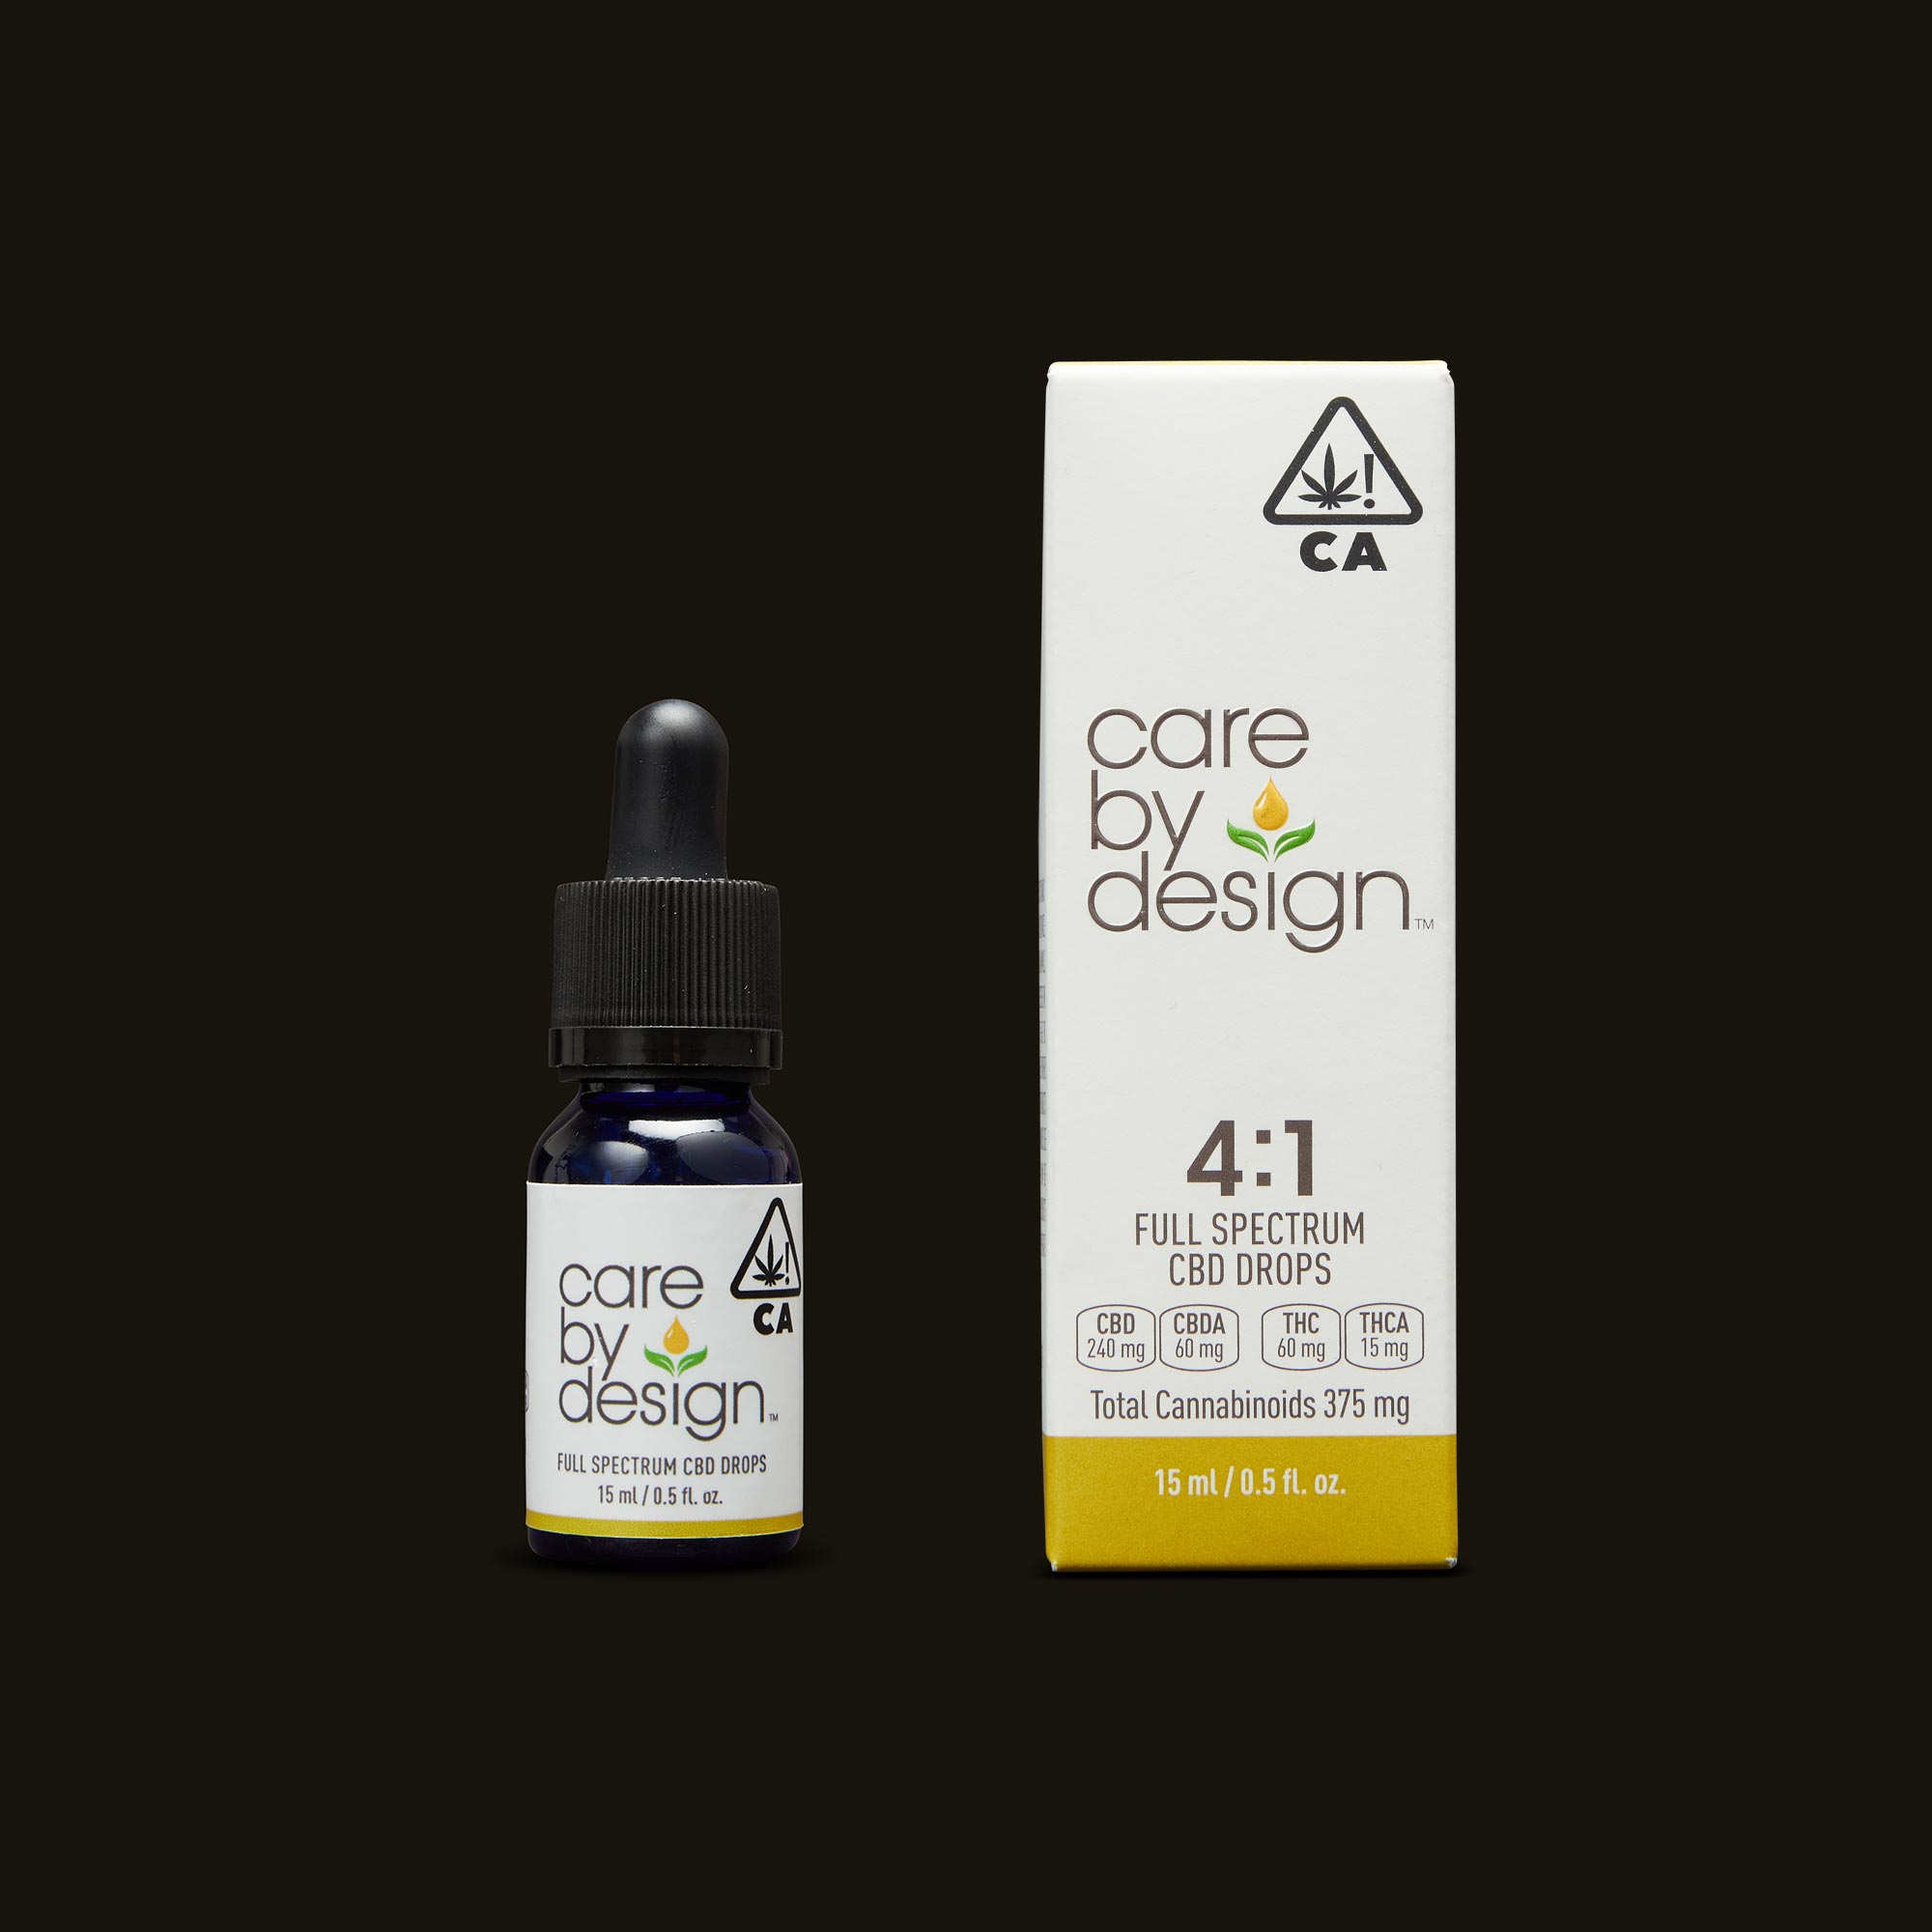 Care By Design 4:1 Full Spectrum CBD Drops - 0.5oz Tincture and Packaging